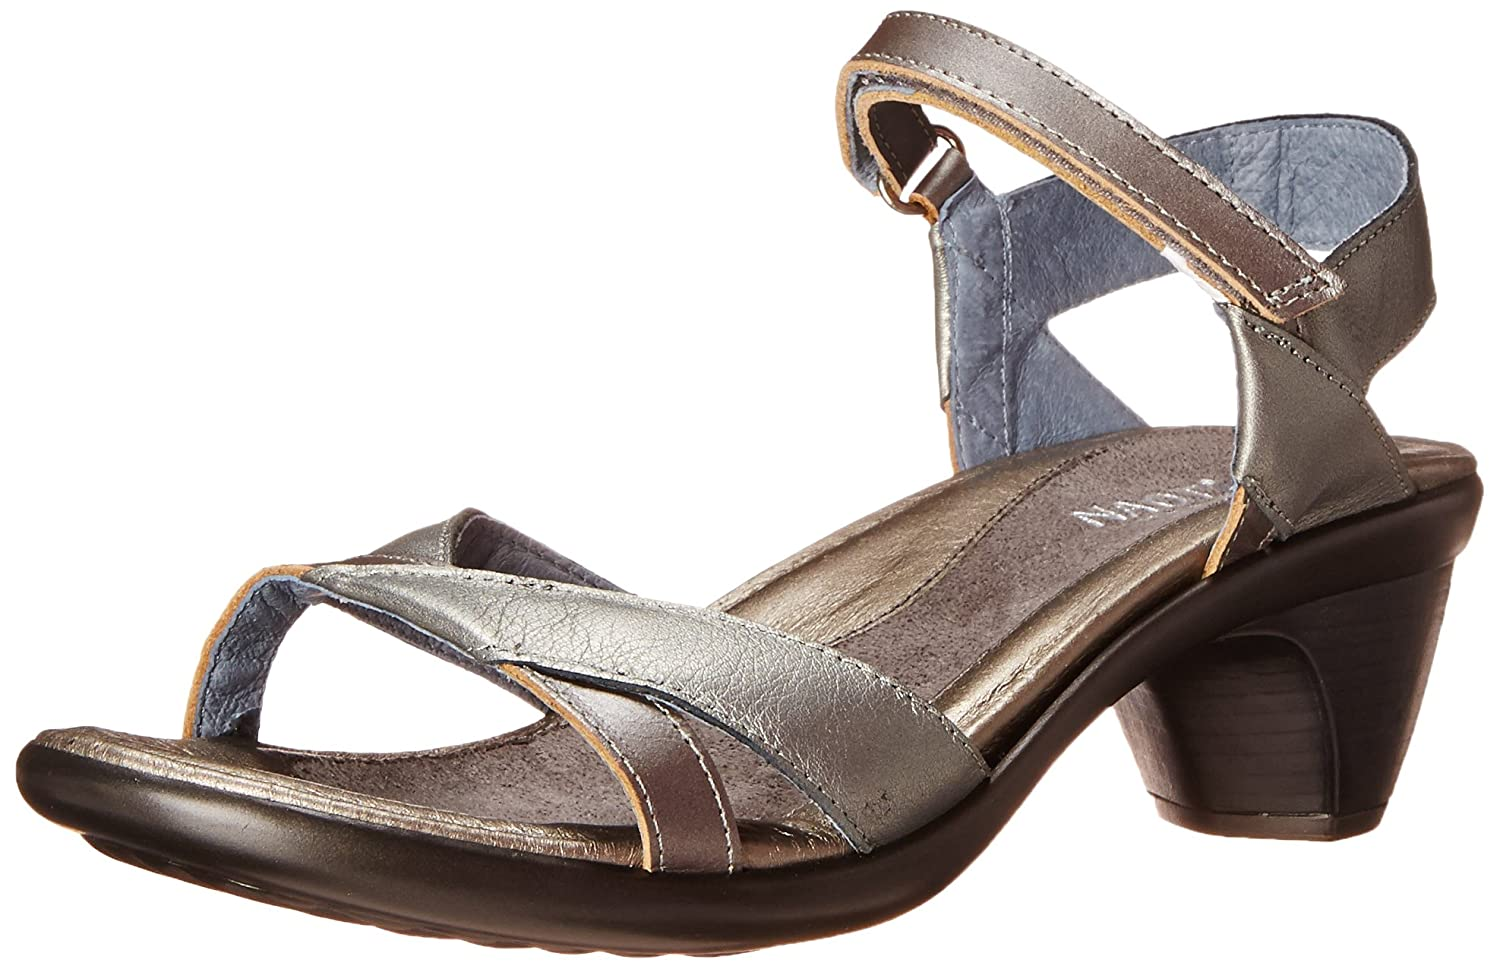 NAOT Women's Cheer Sandal B0072L1RMK 35 EU/4.5-5 M US|Sterling Leather/Mirror Leather